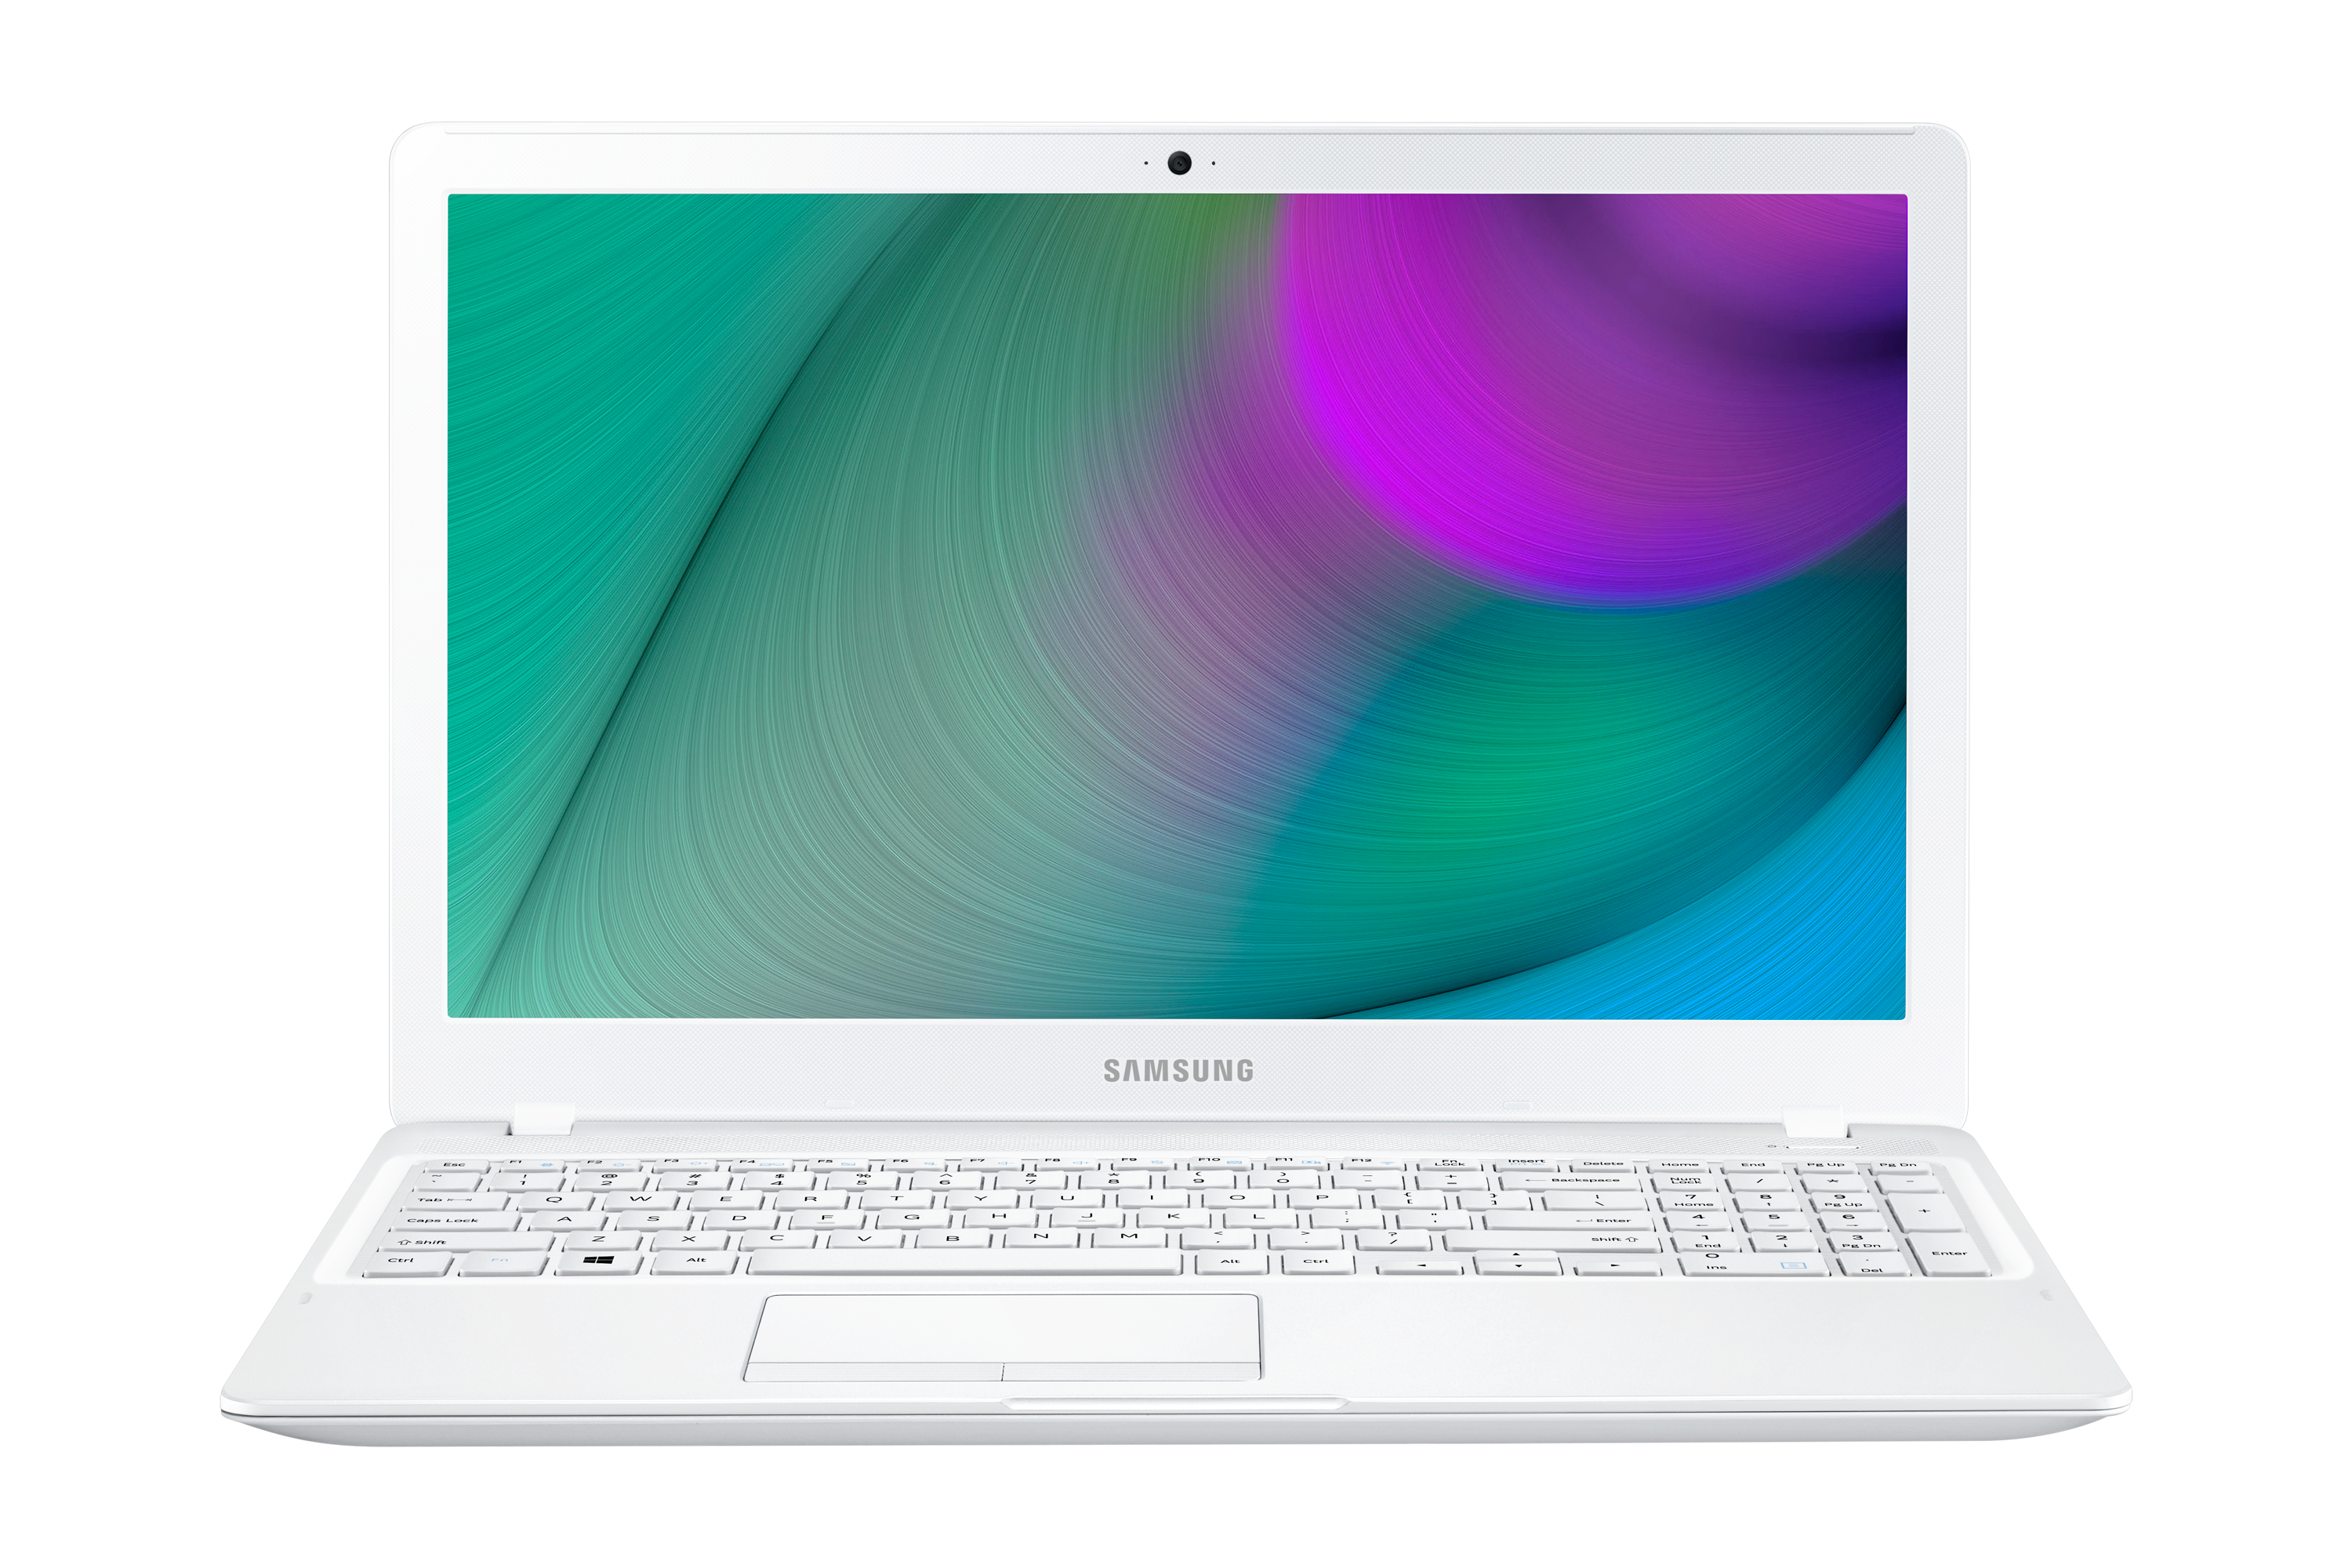 Samsung Notebook 5